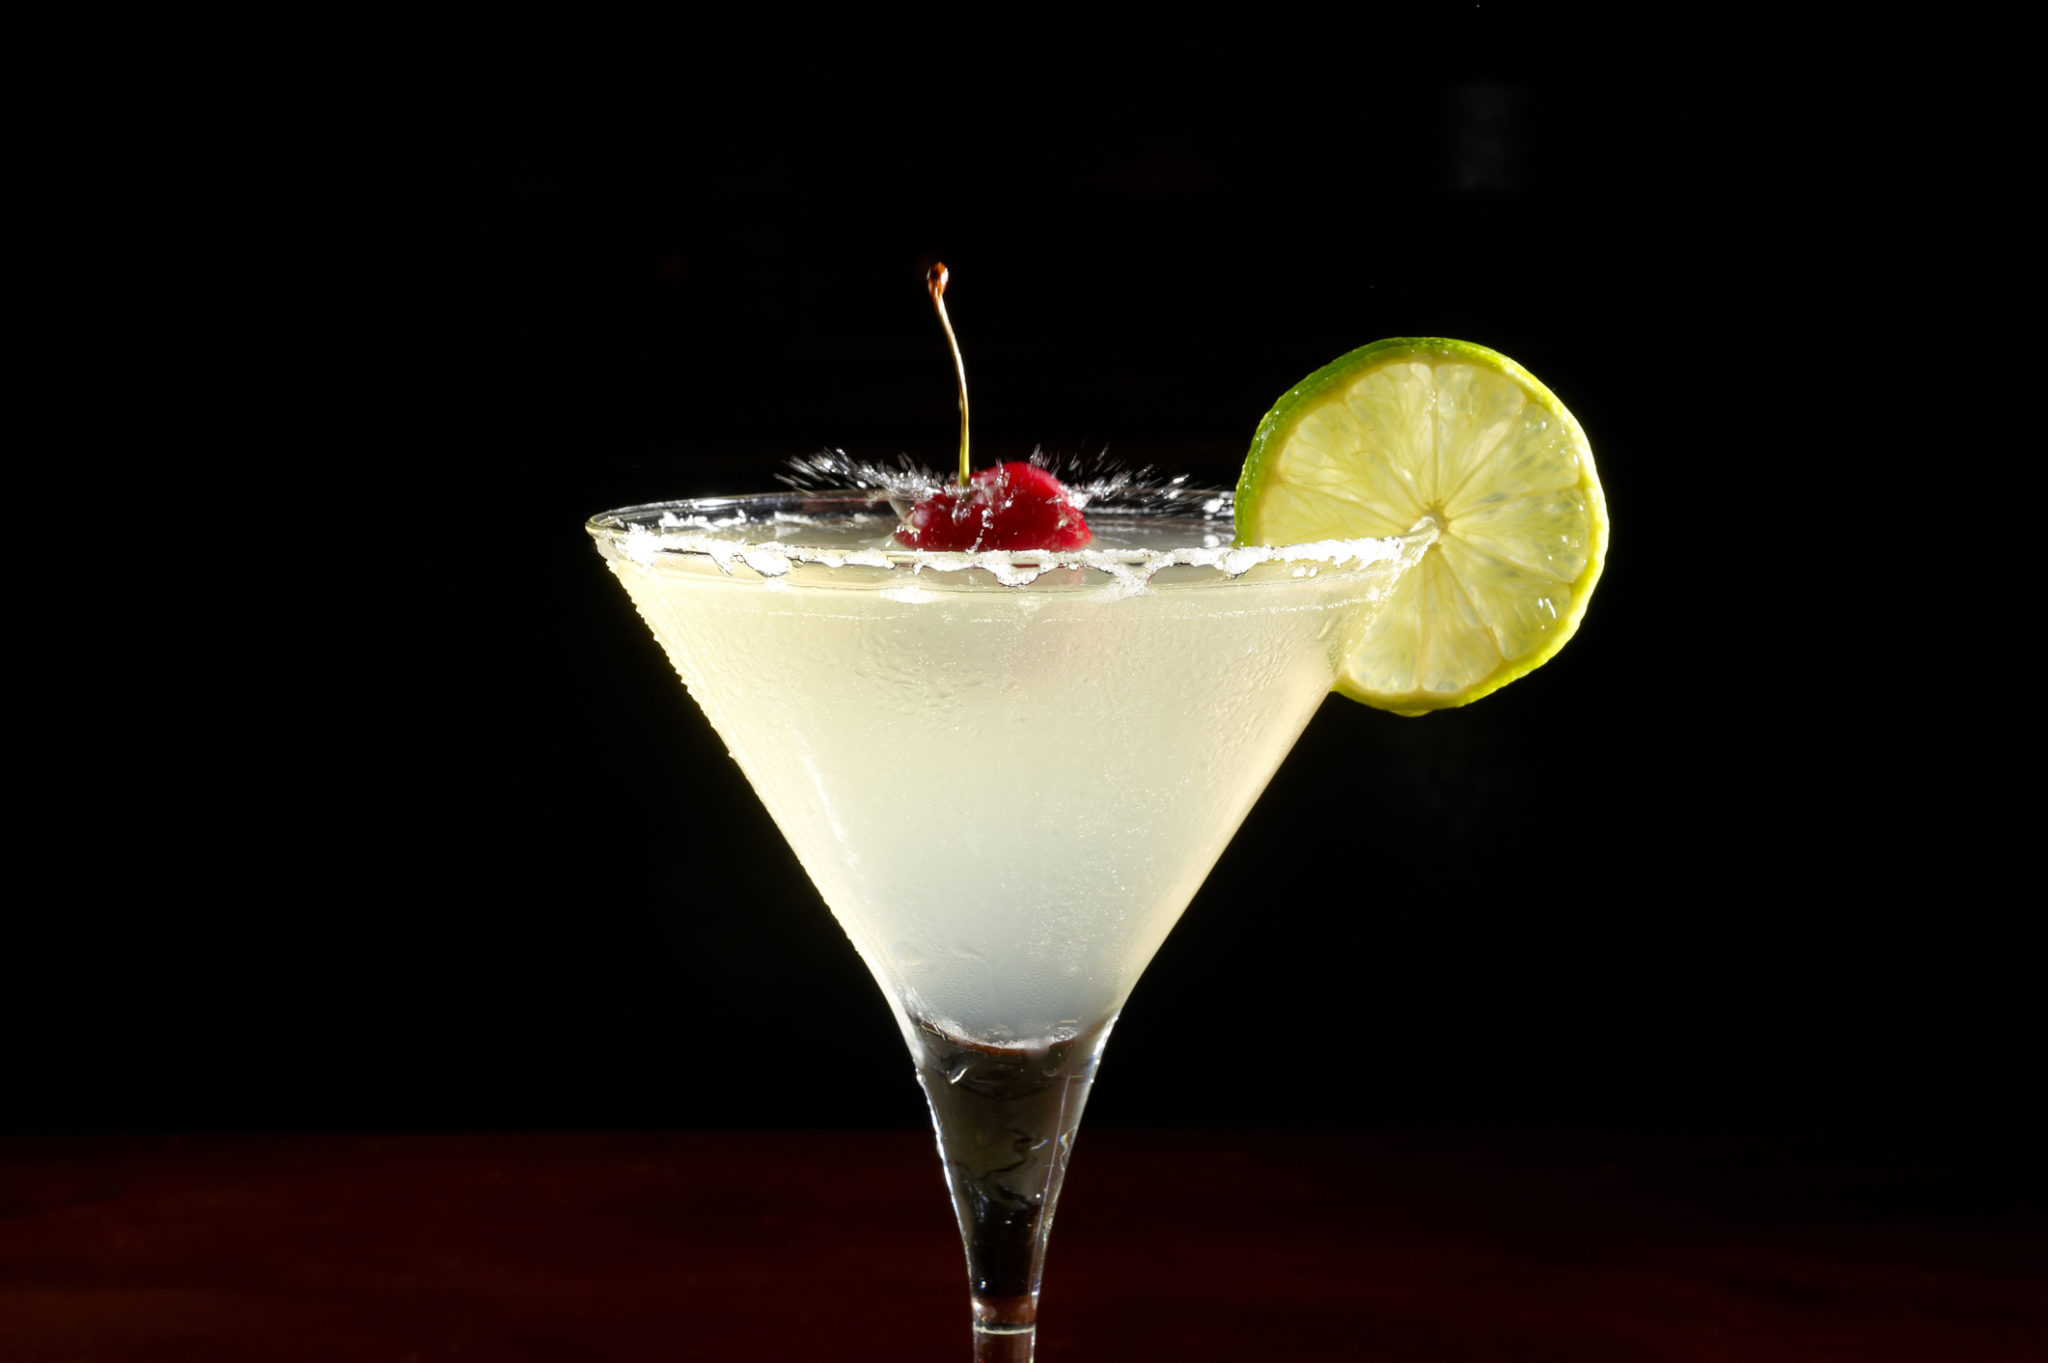 cocktail-with-lemon-and-cherry-26150490